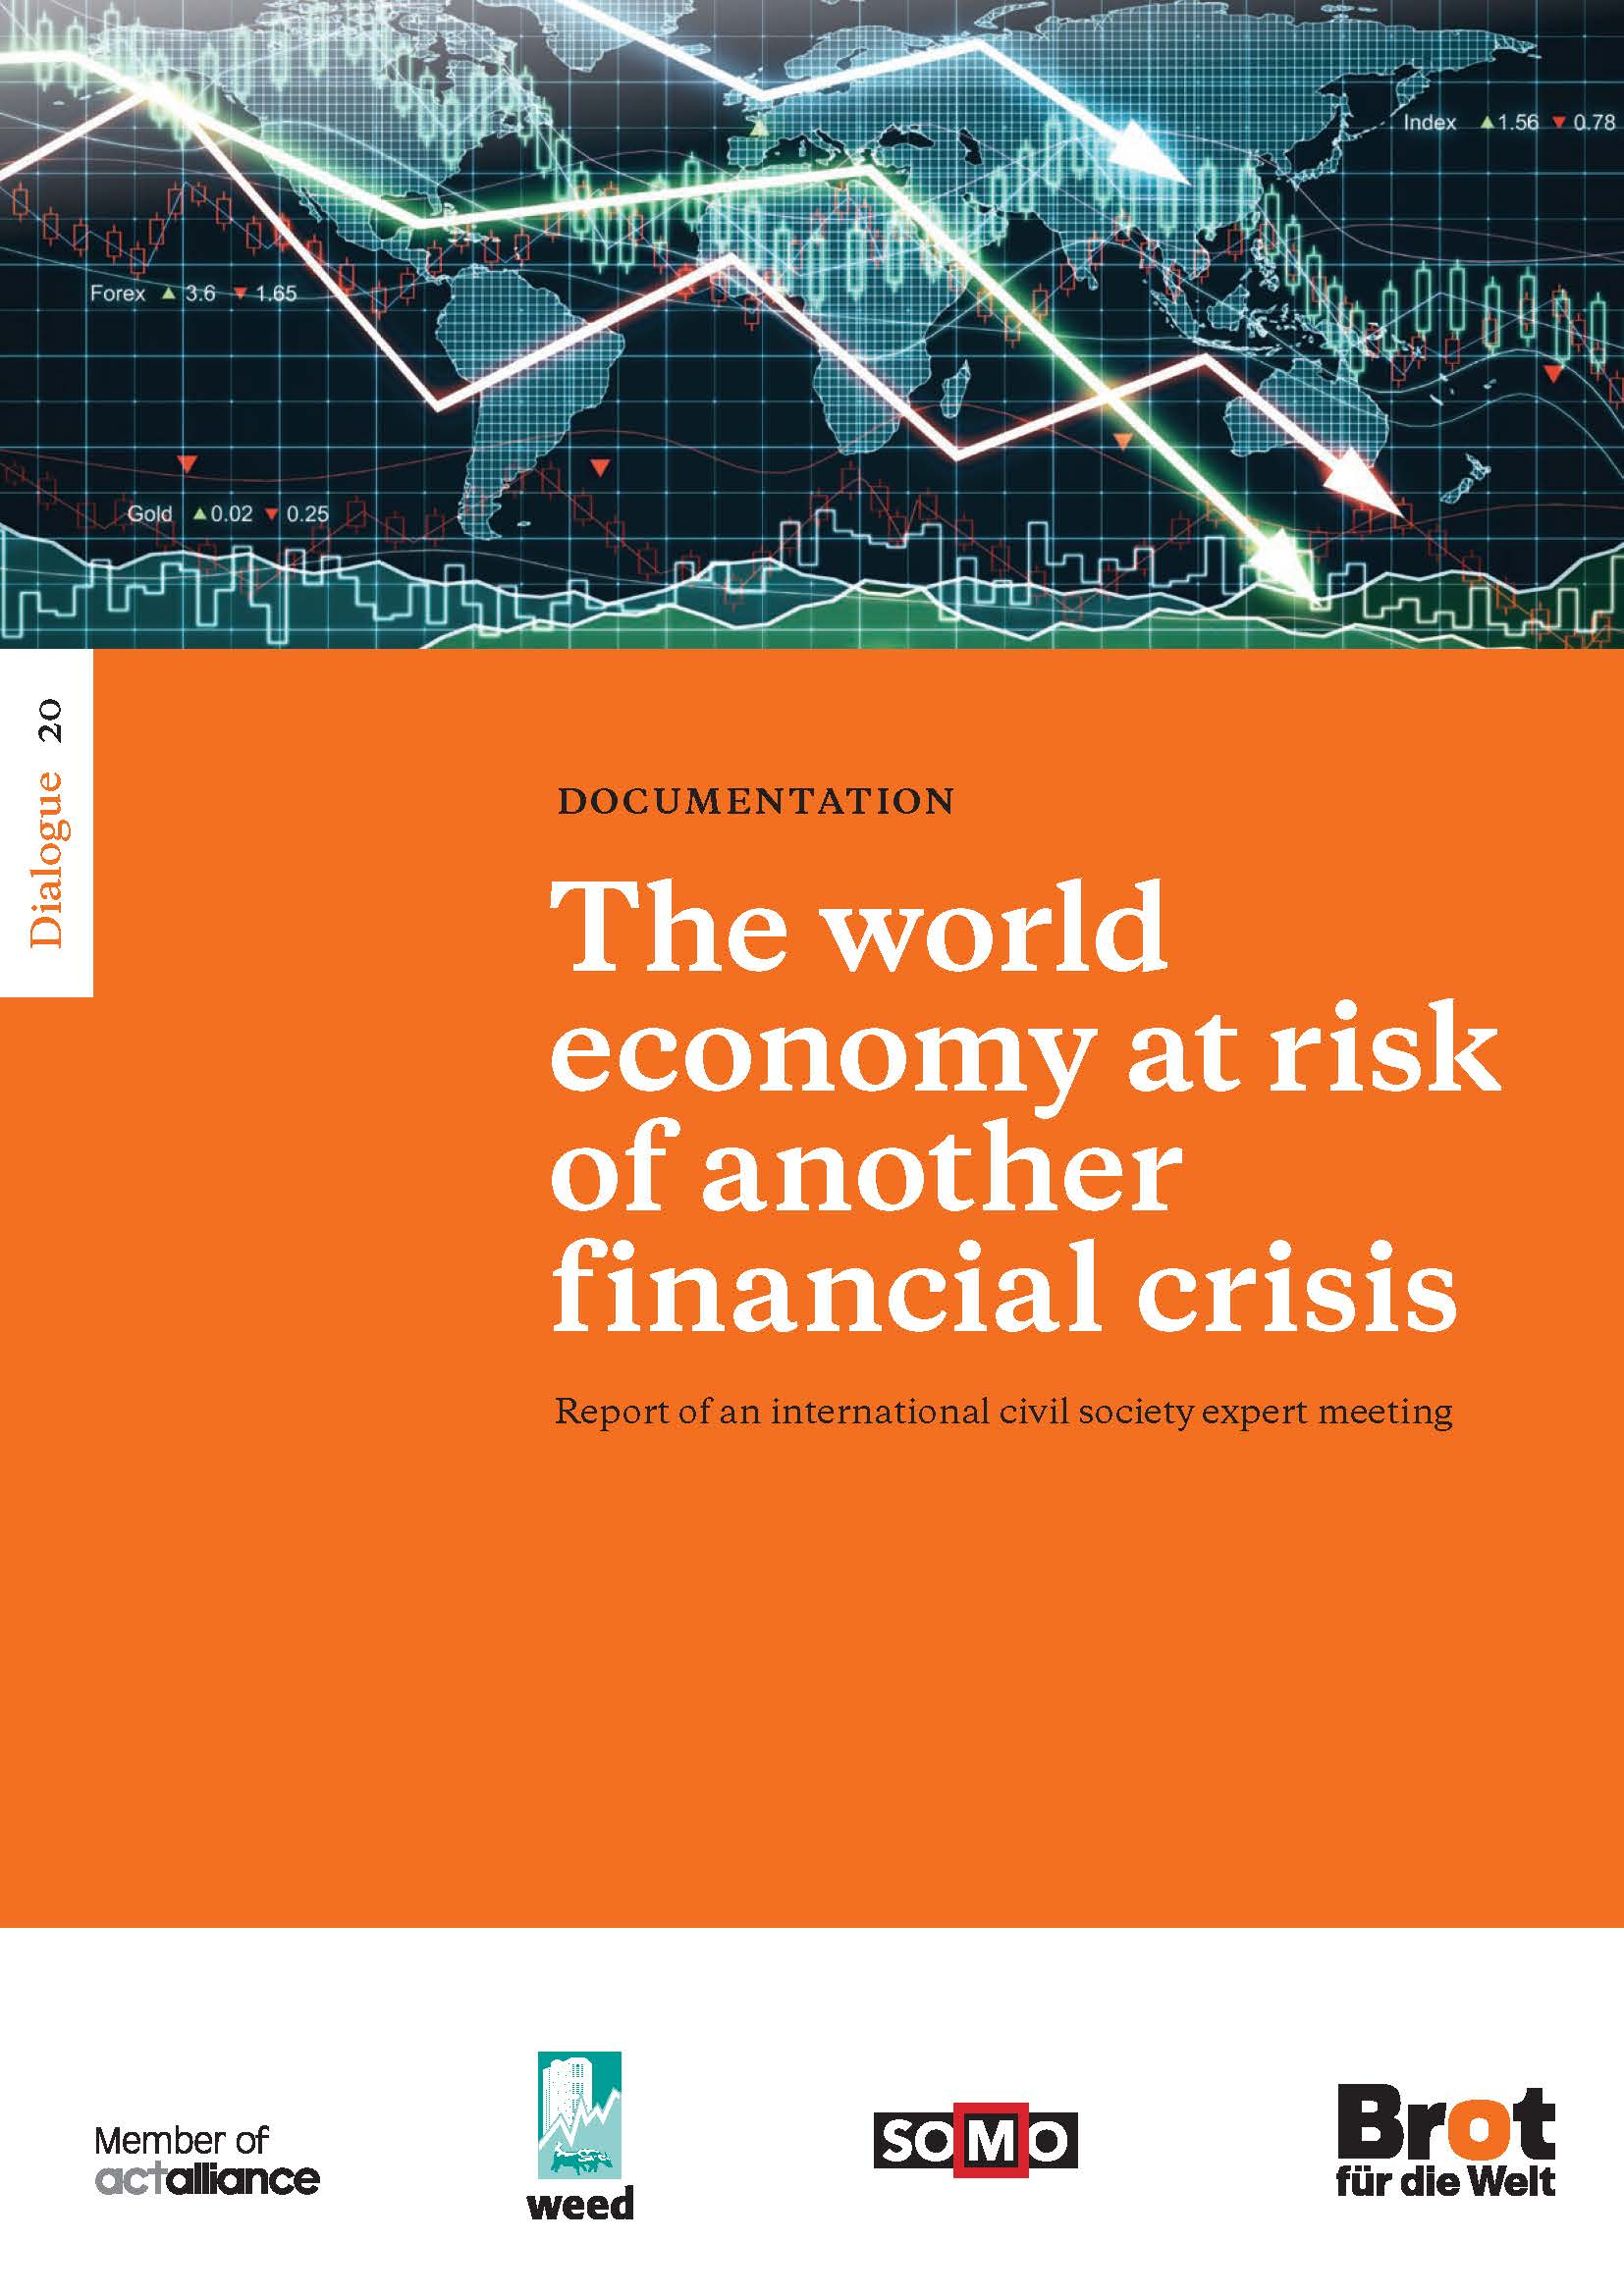 Dialogue 20: The world economy at risk of another financial crisis